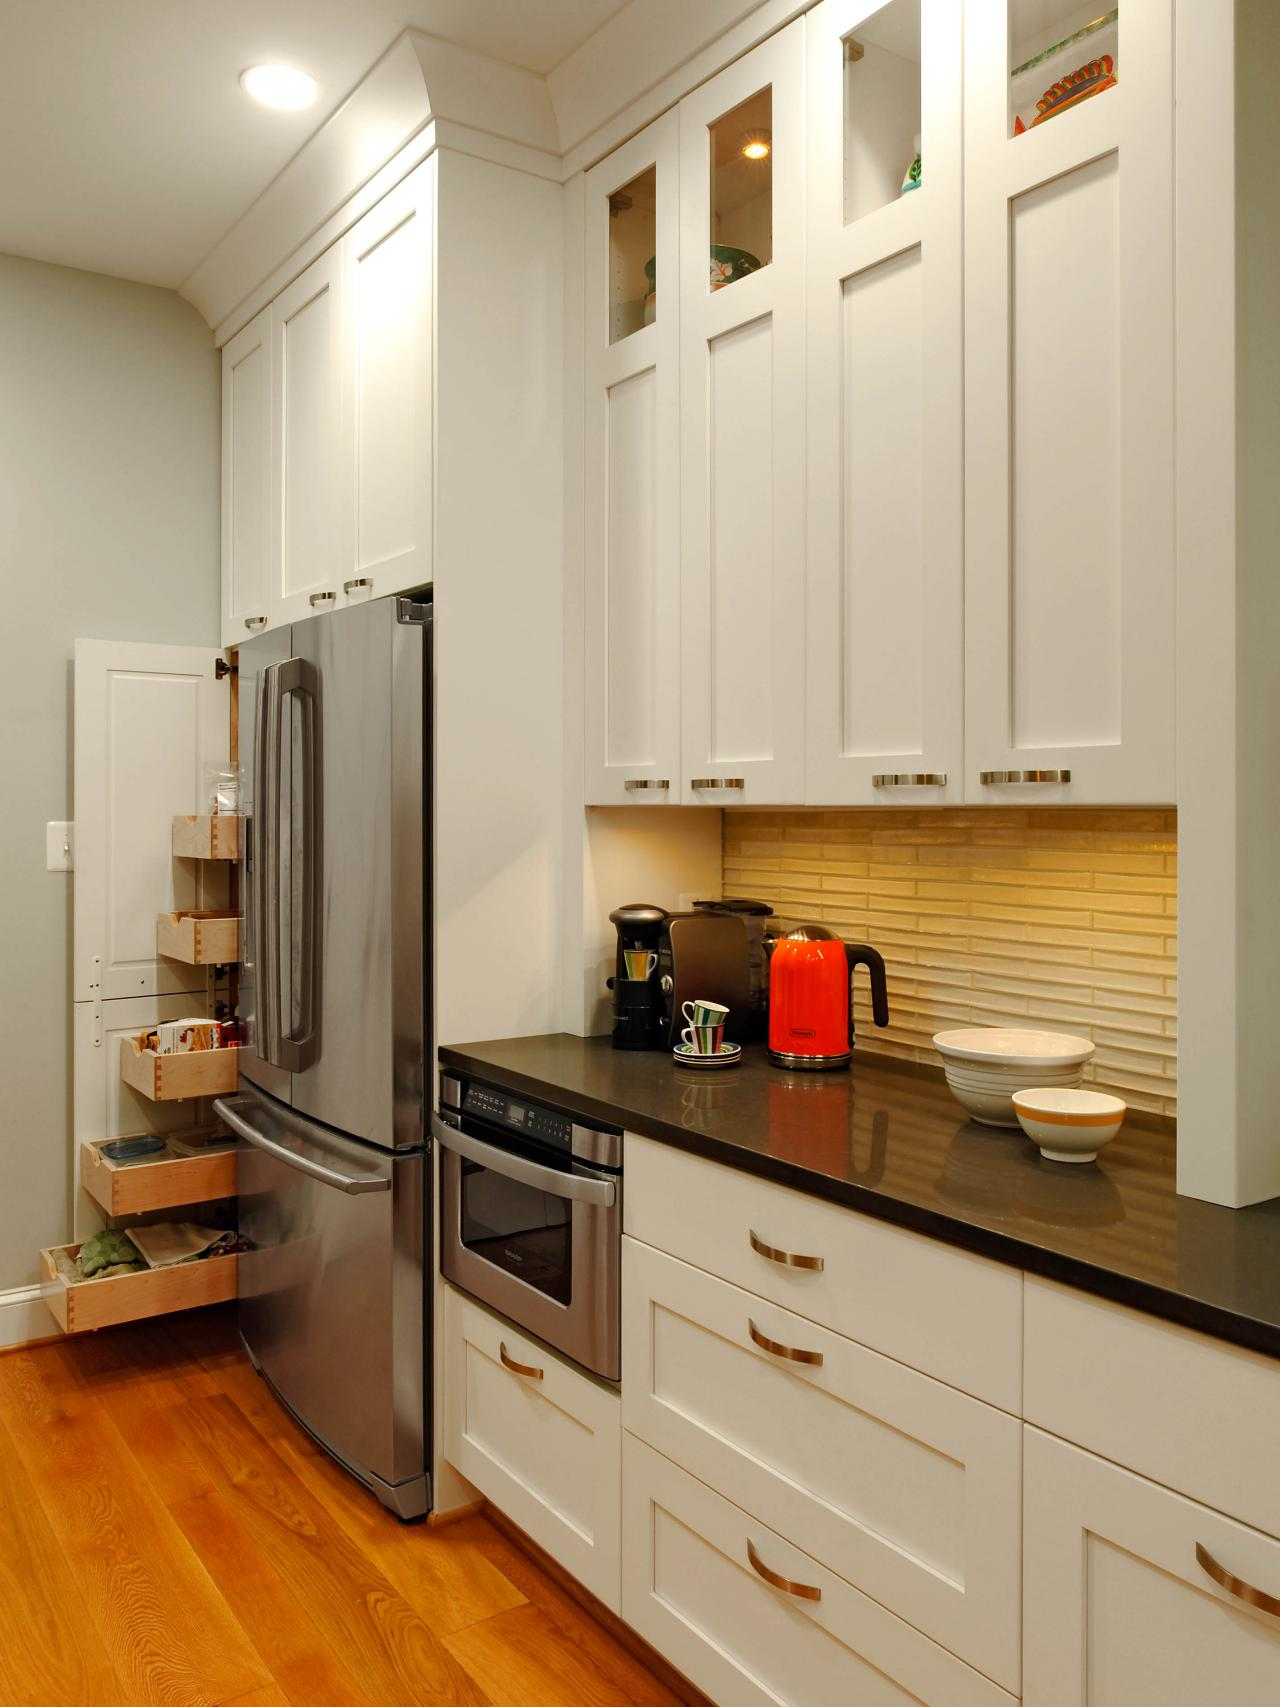 staining kitchen cabinets pictures ideas  tips from hgtv  hgtv - staining kitchen cabinets